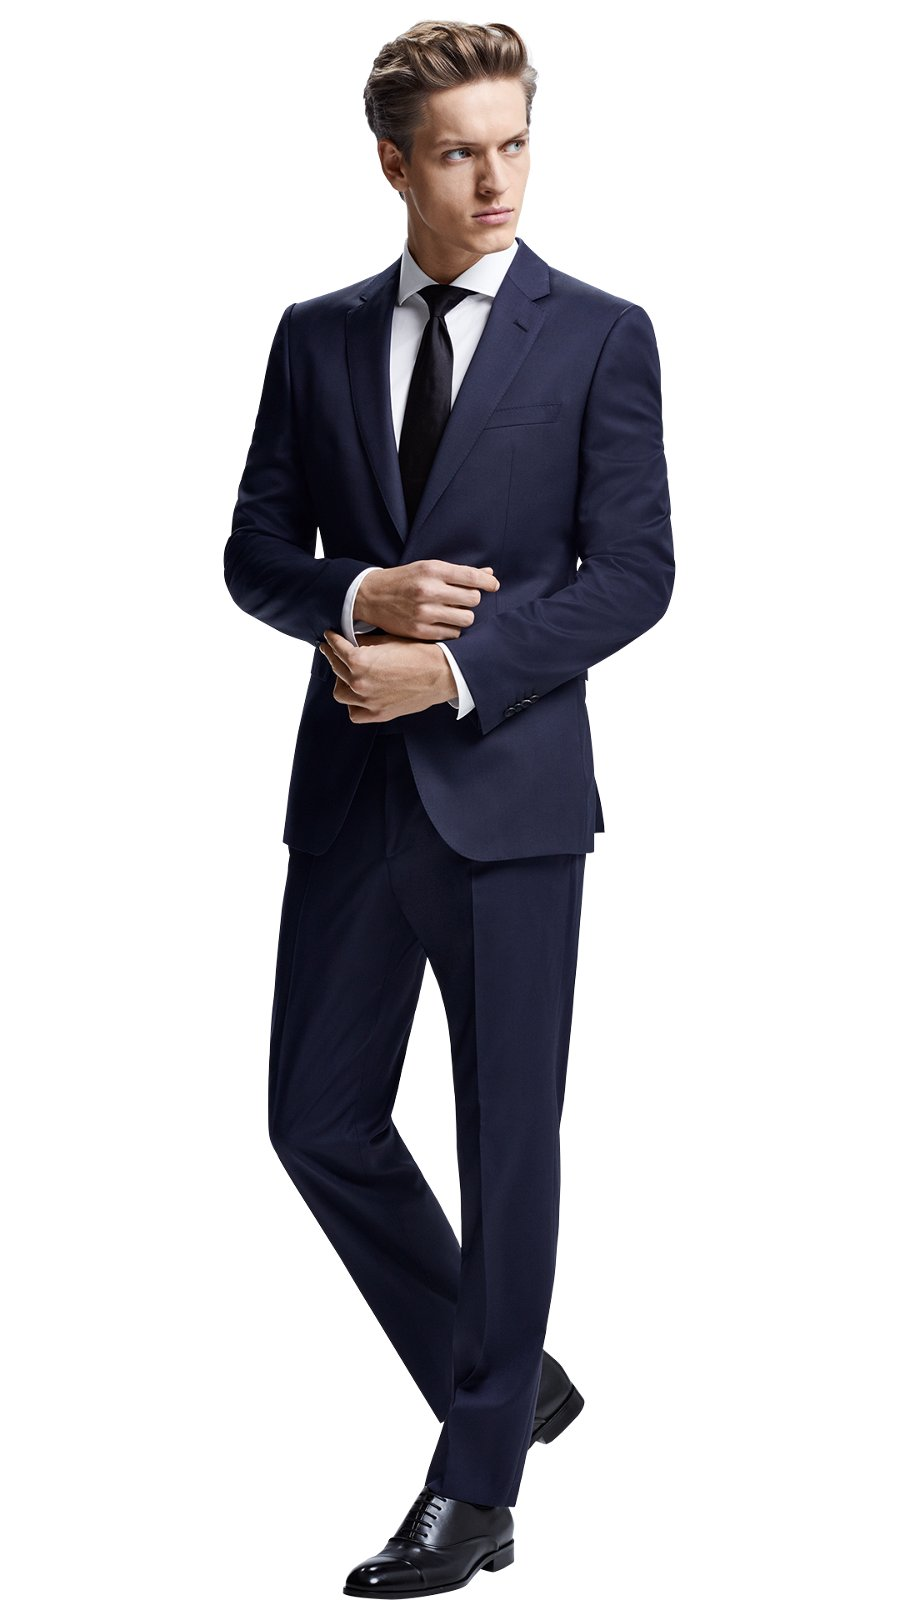 46940e88f Man wearing a mix and match dark blue suit together with white shirt, ...